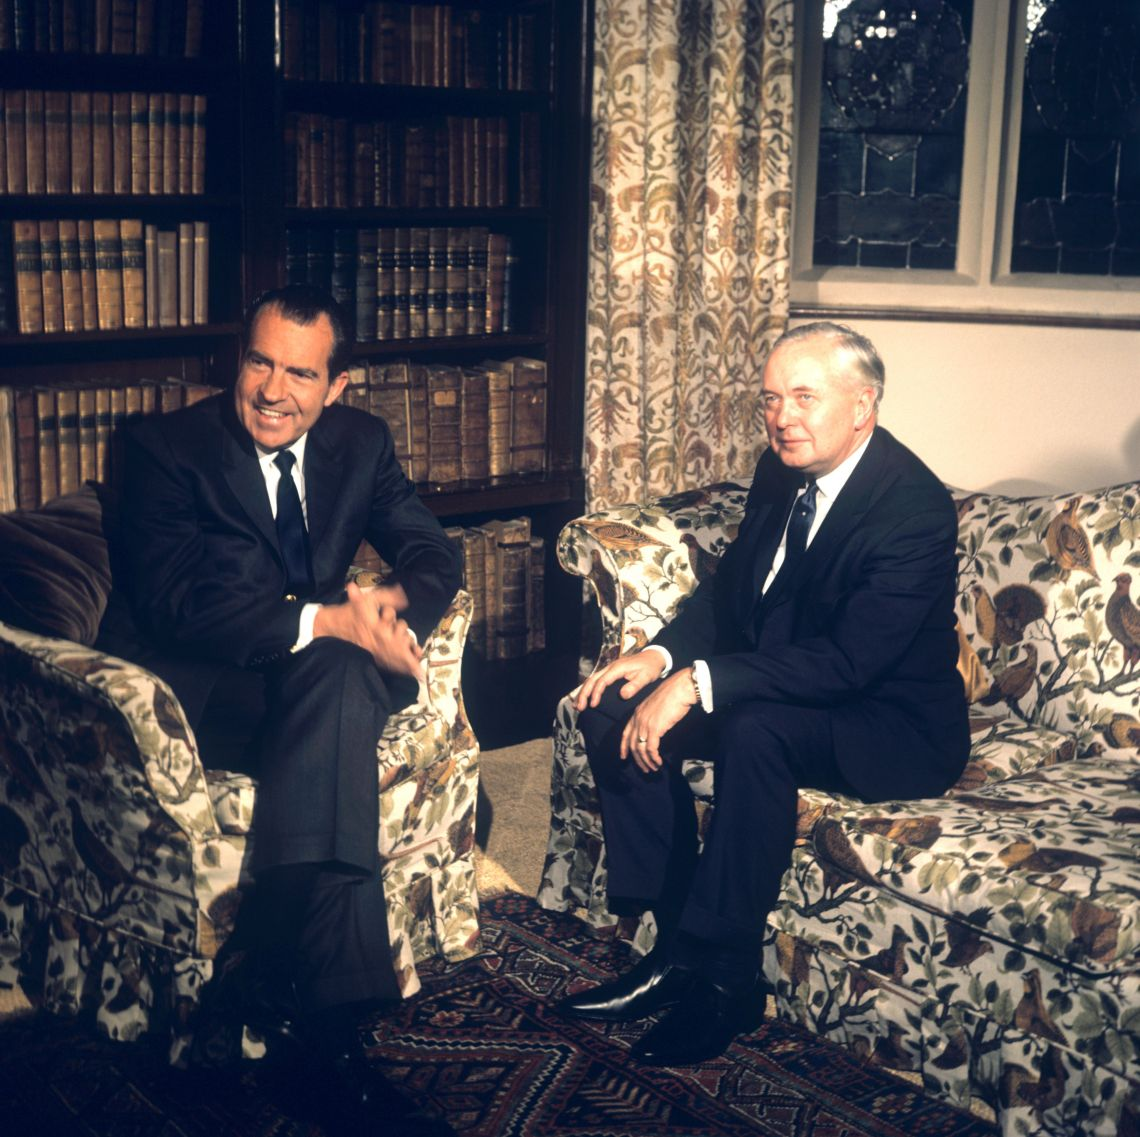 President Nixon meets Prime Minister Harold Wilson at Chequers, 1970.